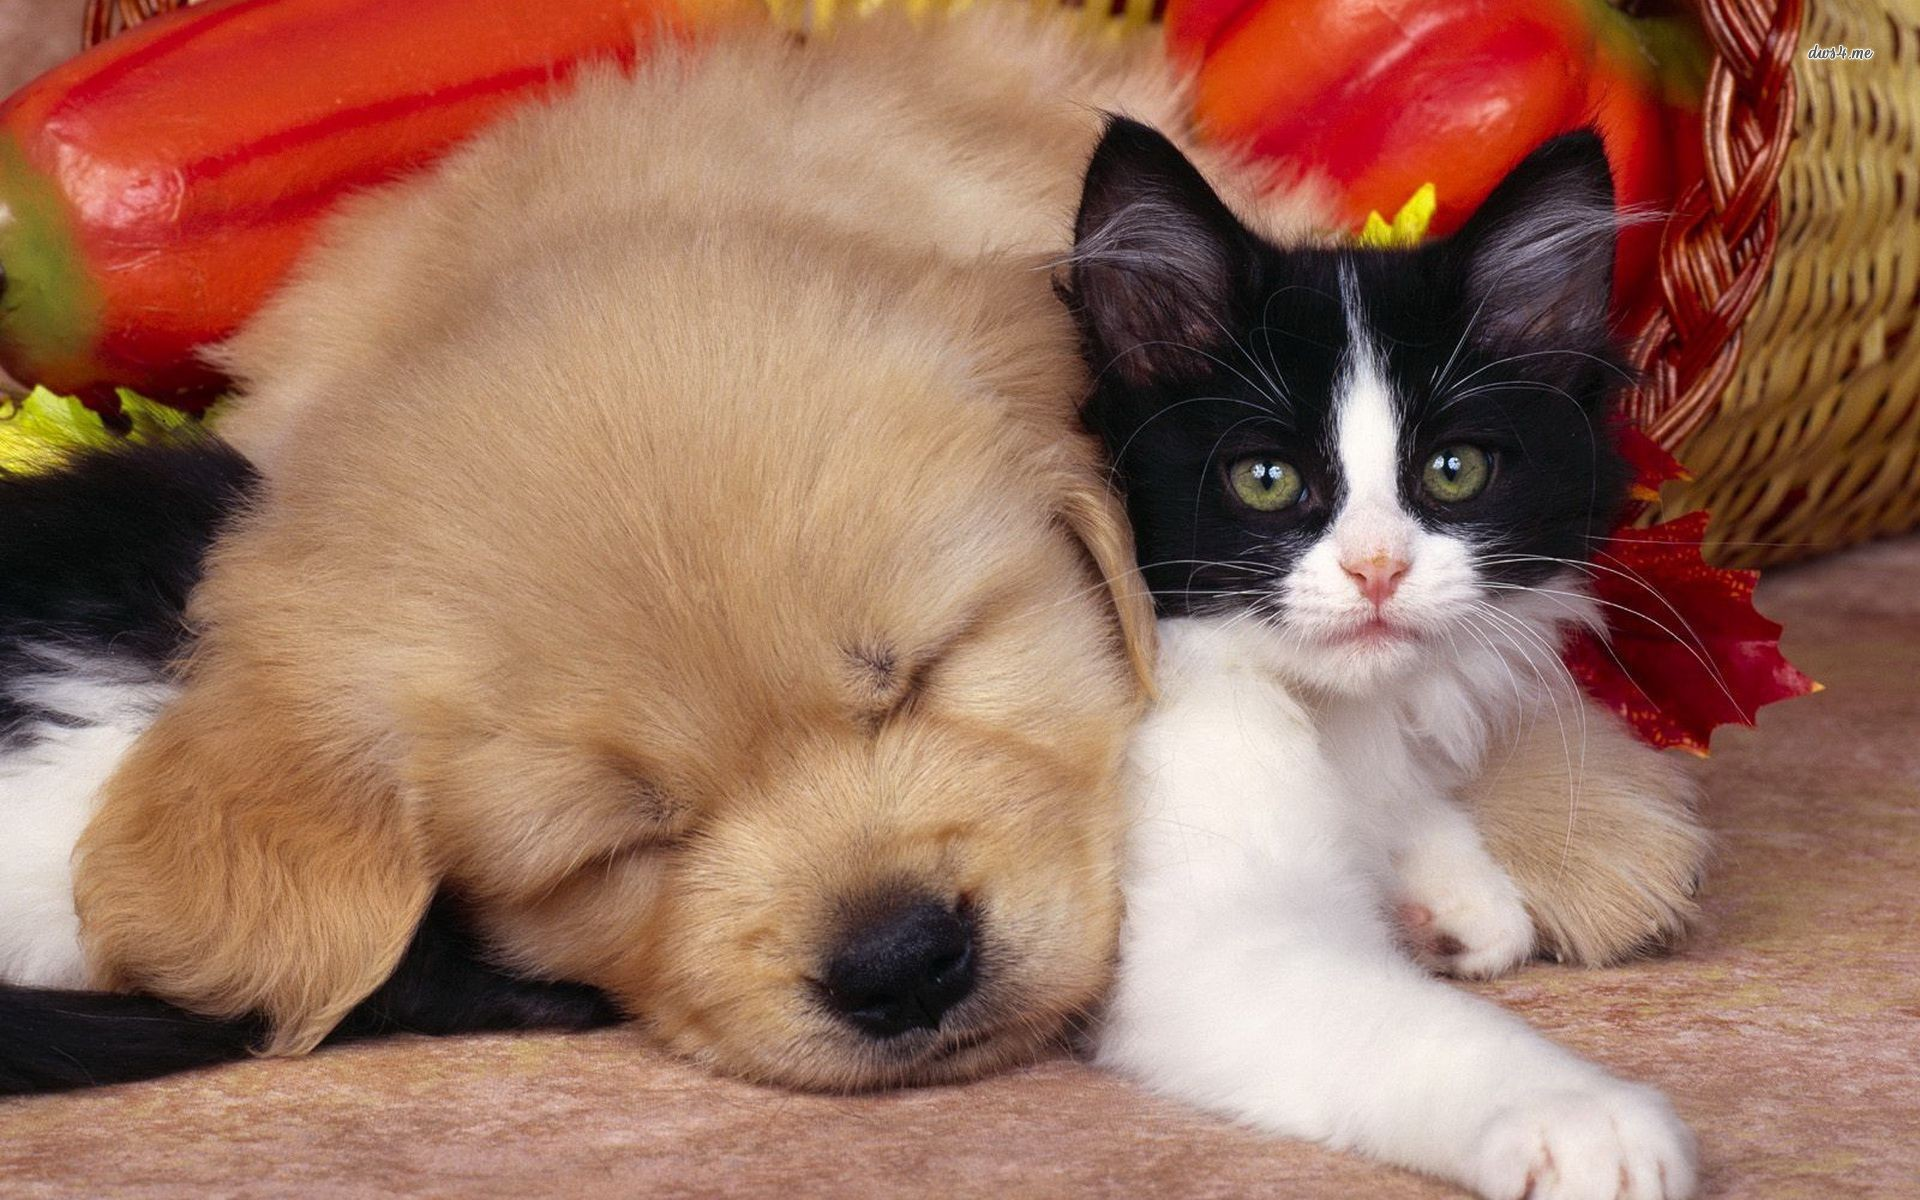 Cute Dog And Cat Hd Wallpaperjpg. Dogs And Cats Wallpaper .